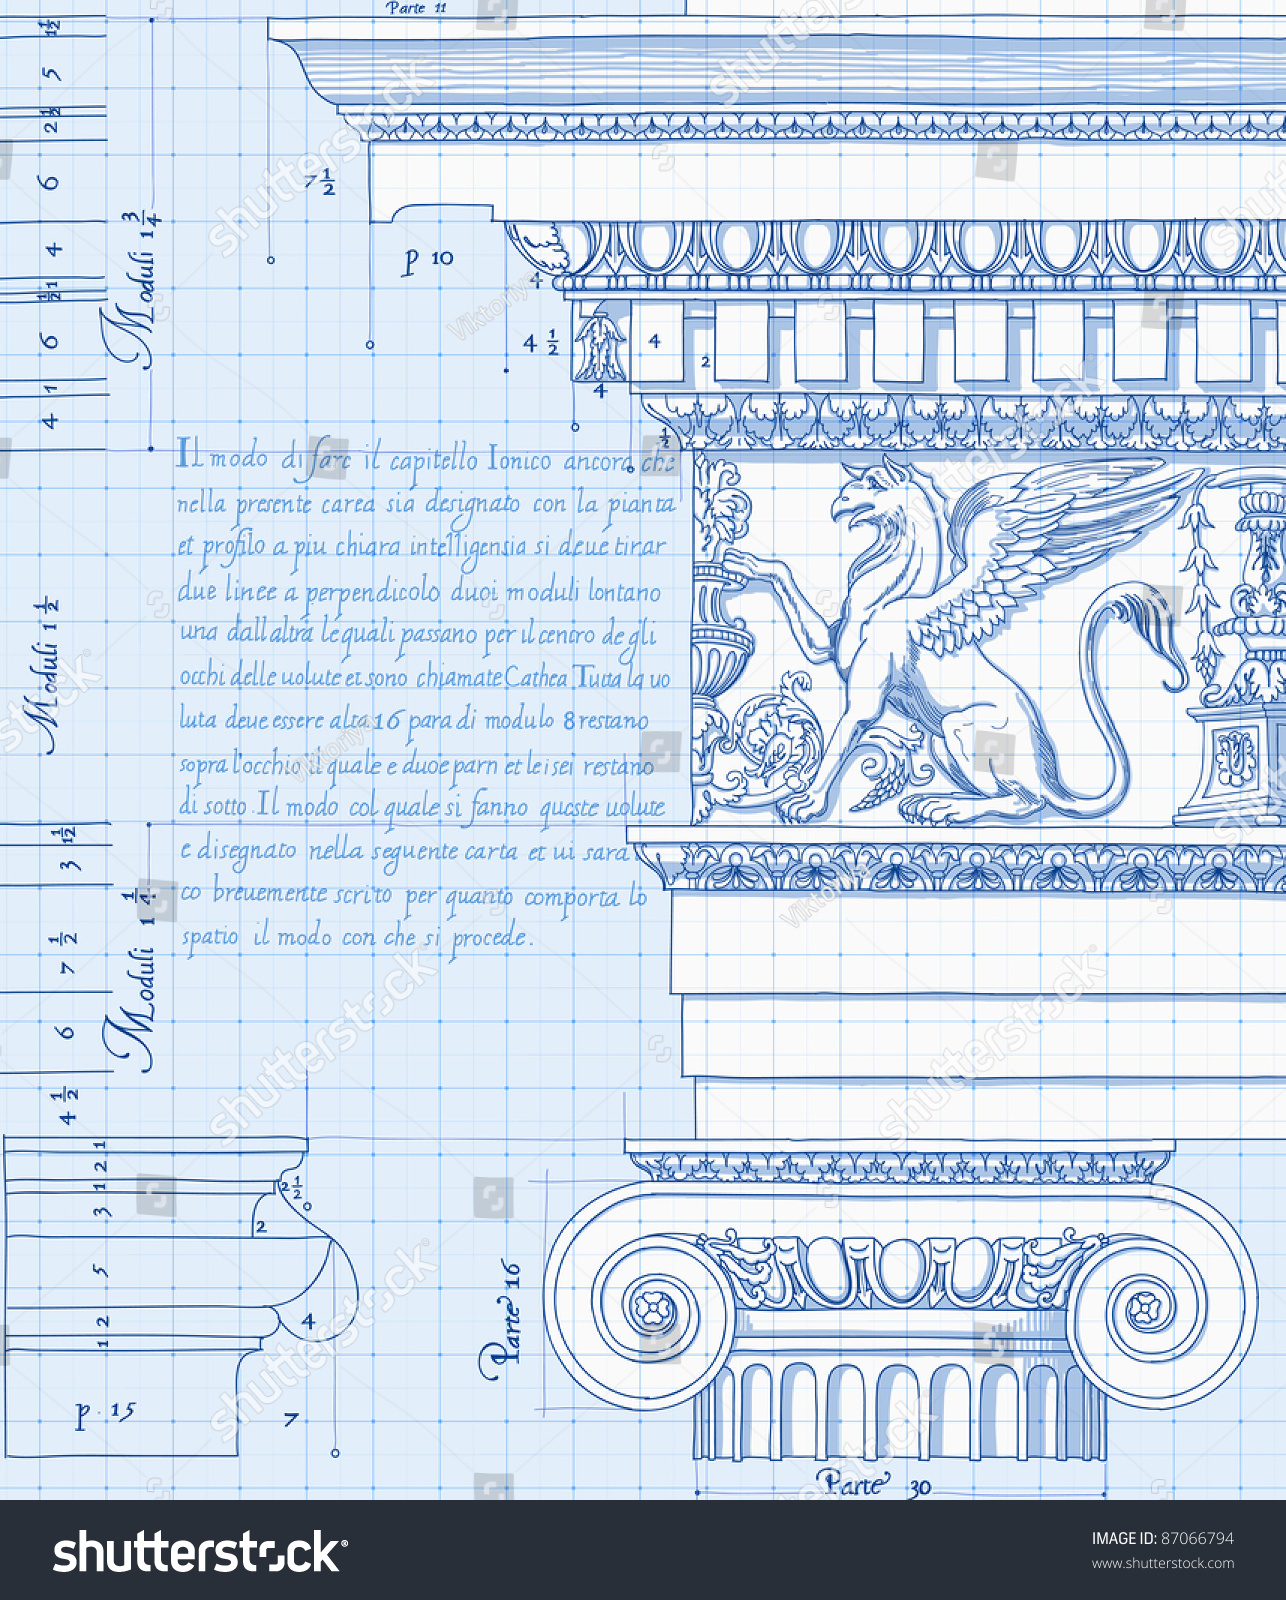 Blueprint hand draw sketch ionic architectural stock illustration blueprint hand draw sketch ionic architectural order bitmap copy my vector id 86211829 malvernweather Image collections